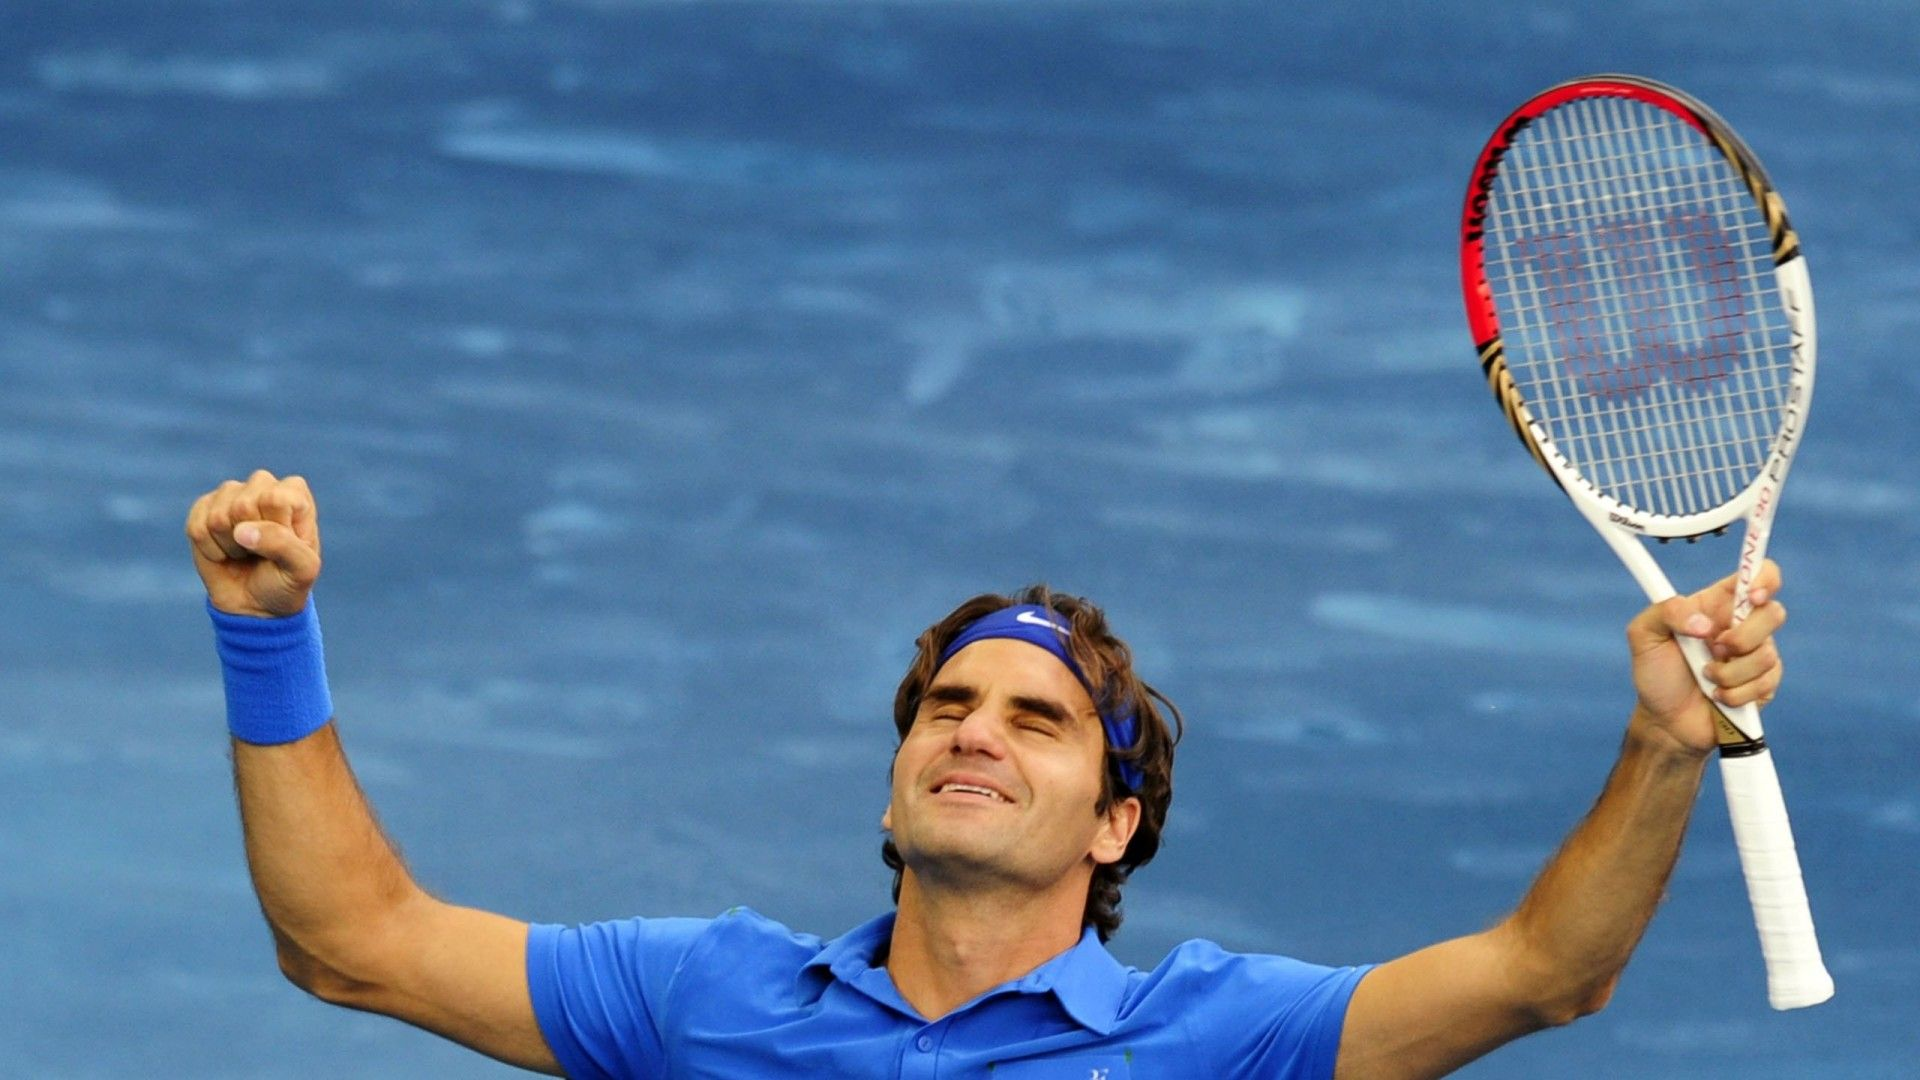 Tennis hd wallpapers free download roger federer pinterest tennis hd wallpapers free download voltagebd Image collections